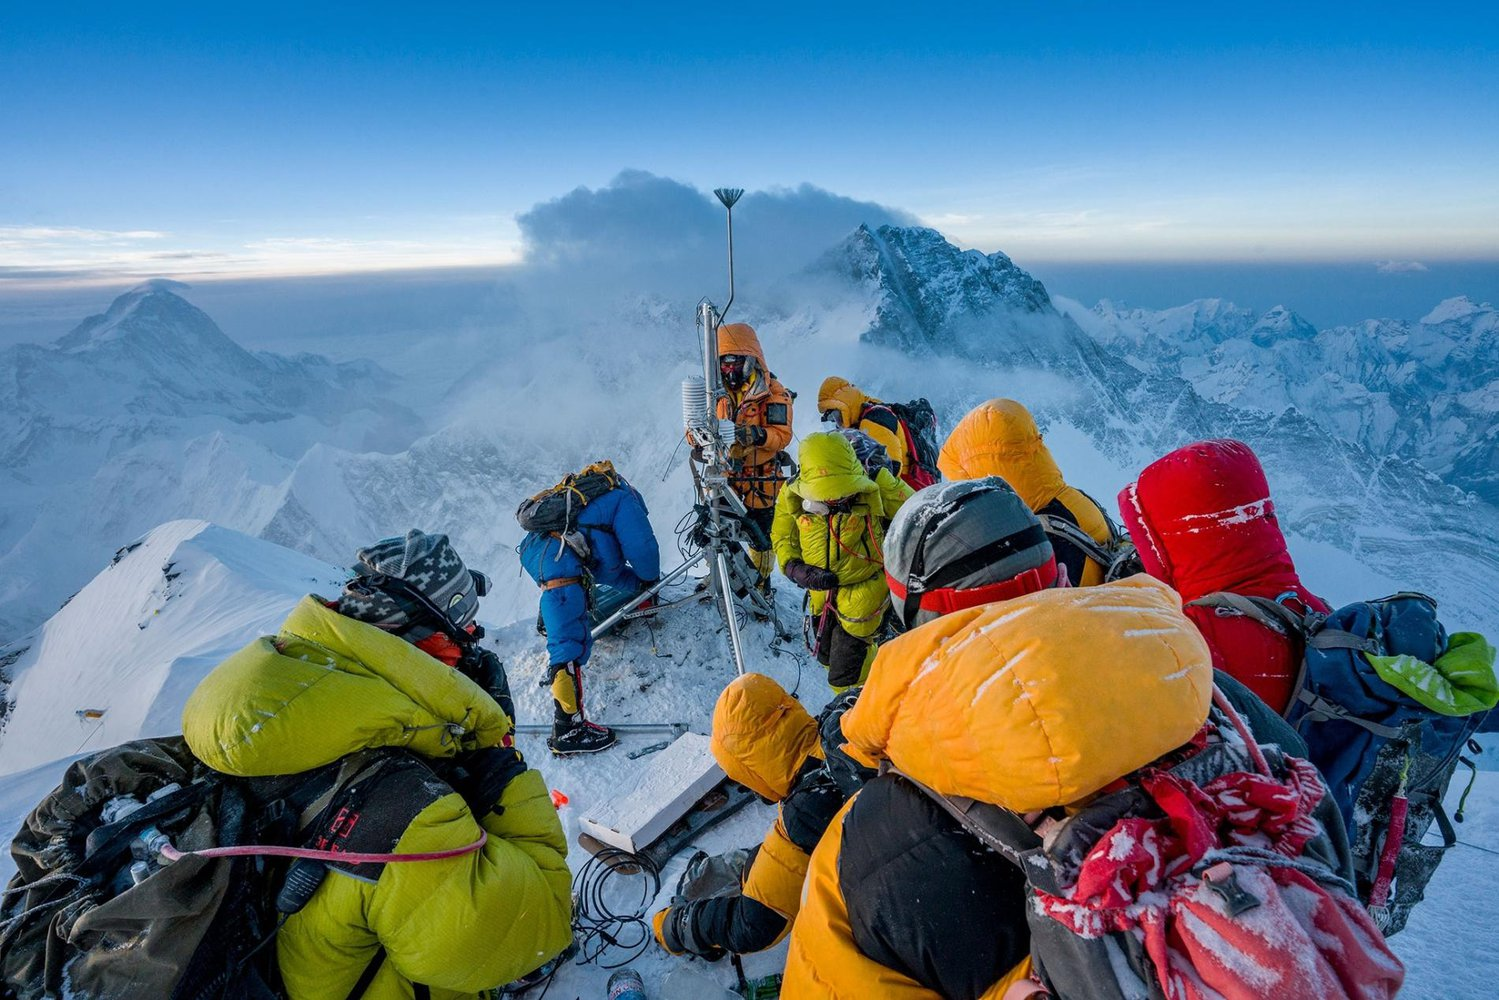 everest-science-near-summit-building-weather-station-group.ngsversion.1560455875045.adapt.1900.1.jpg